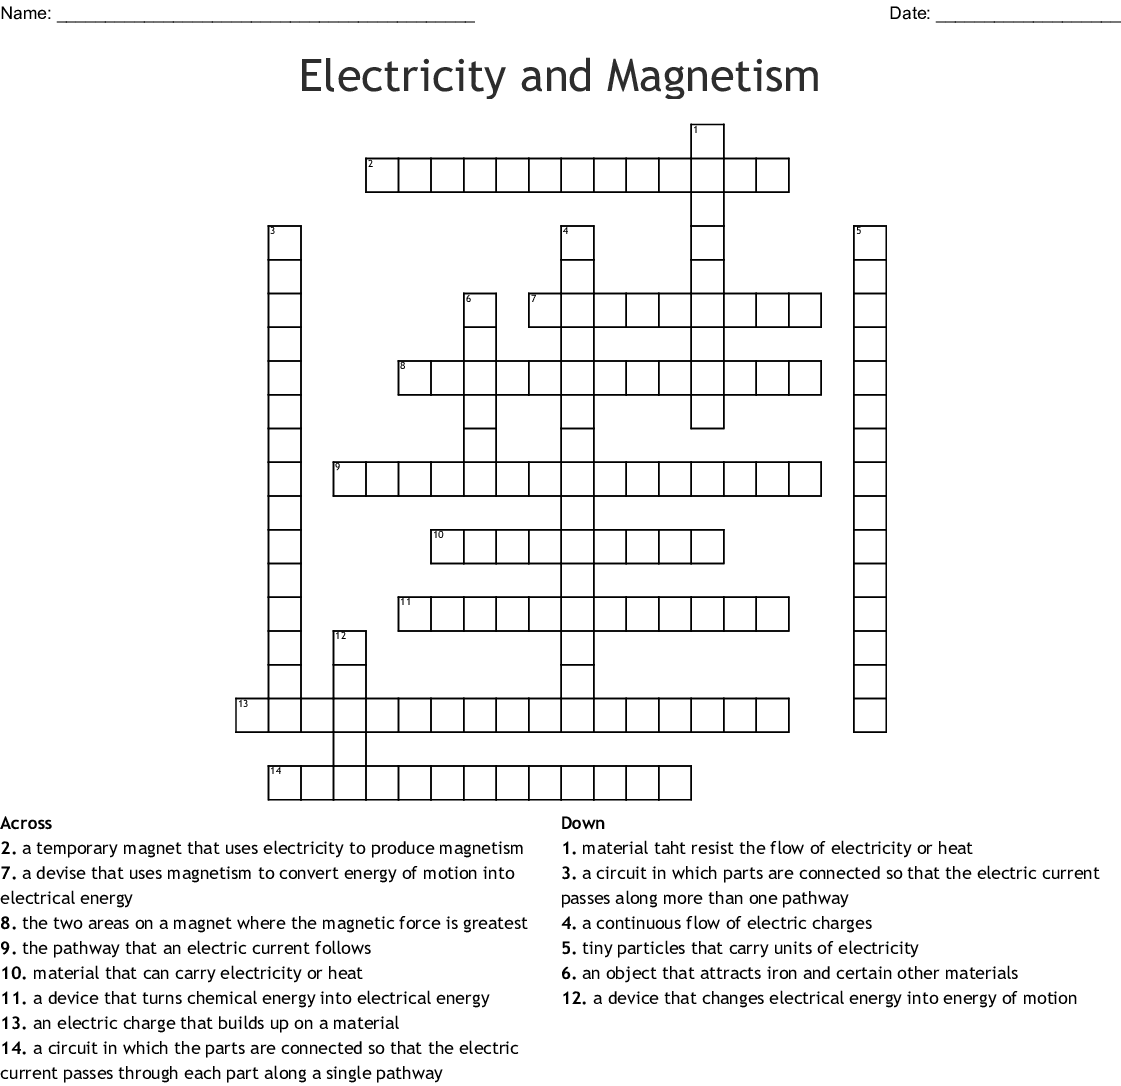 hight resolution of Electric Circuits And Electric Current Worksheet Answers - Nidecmege